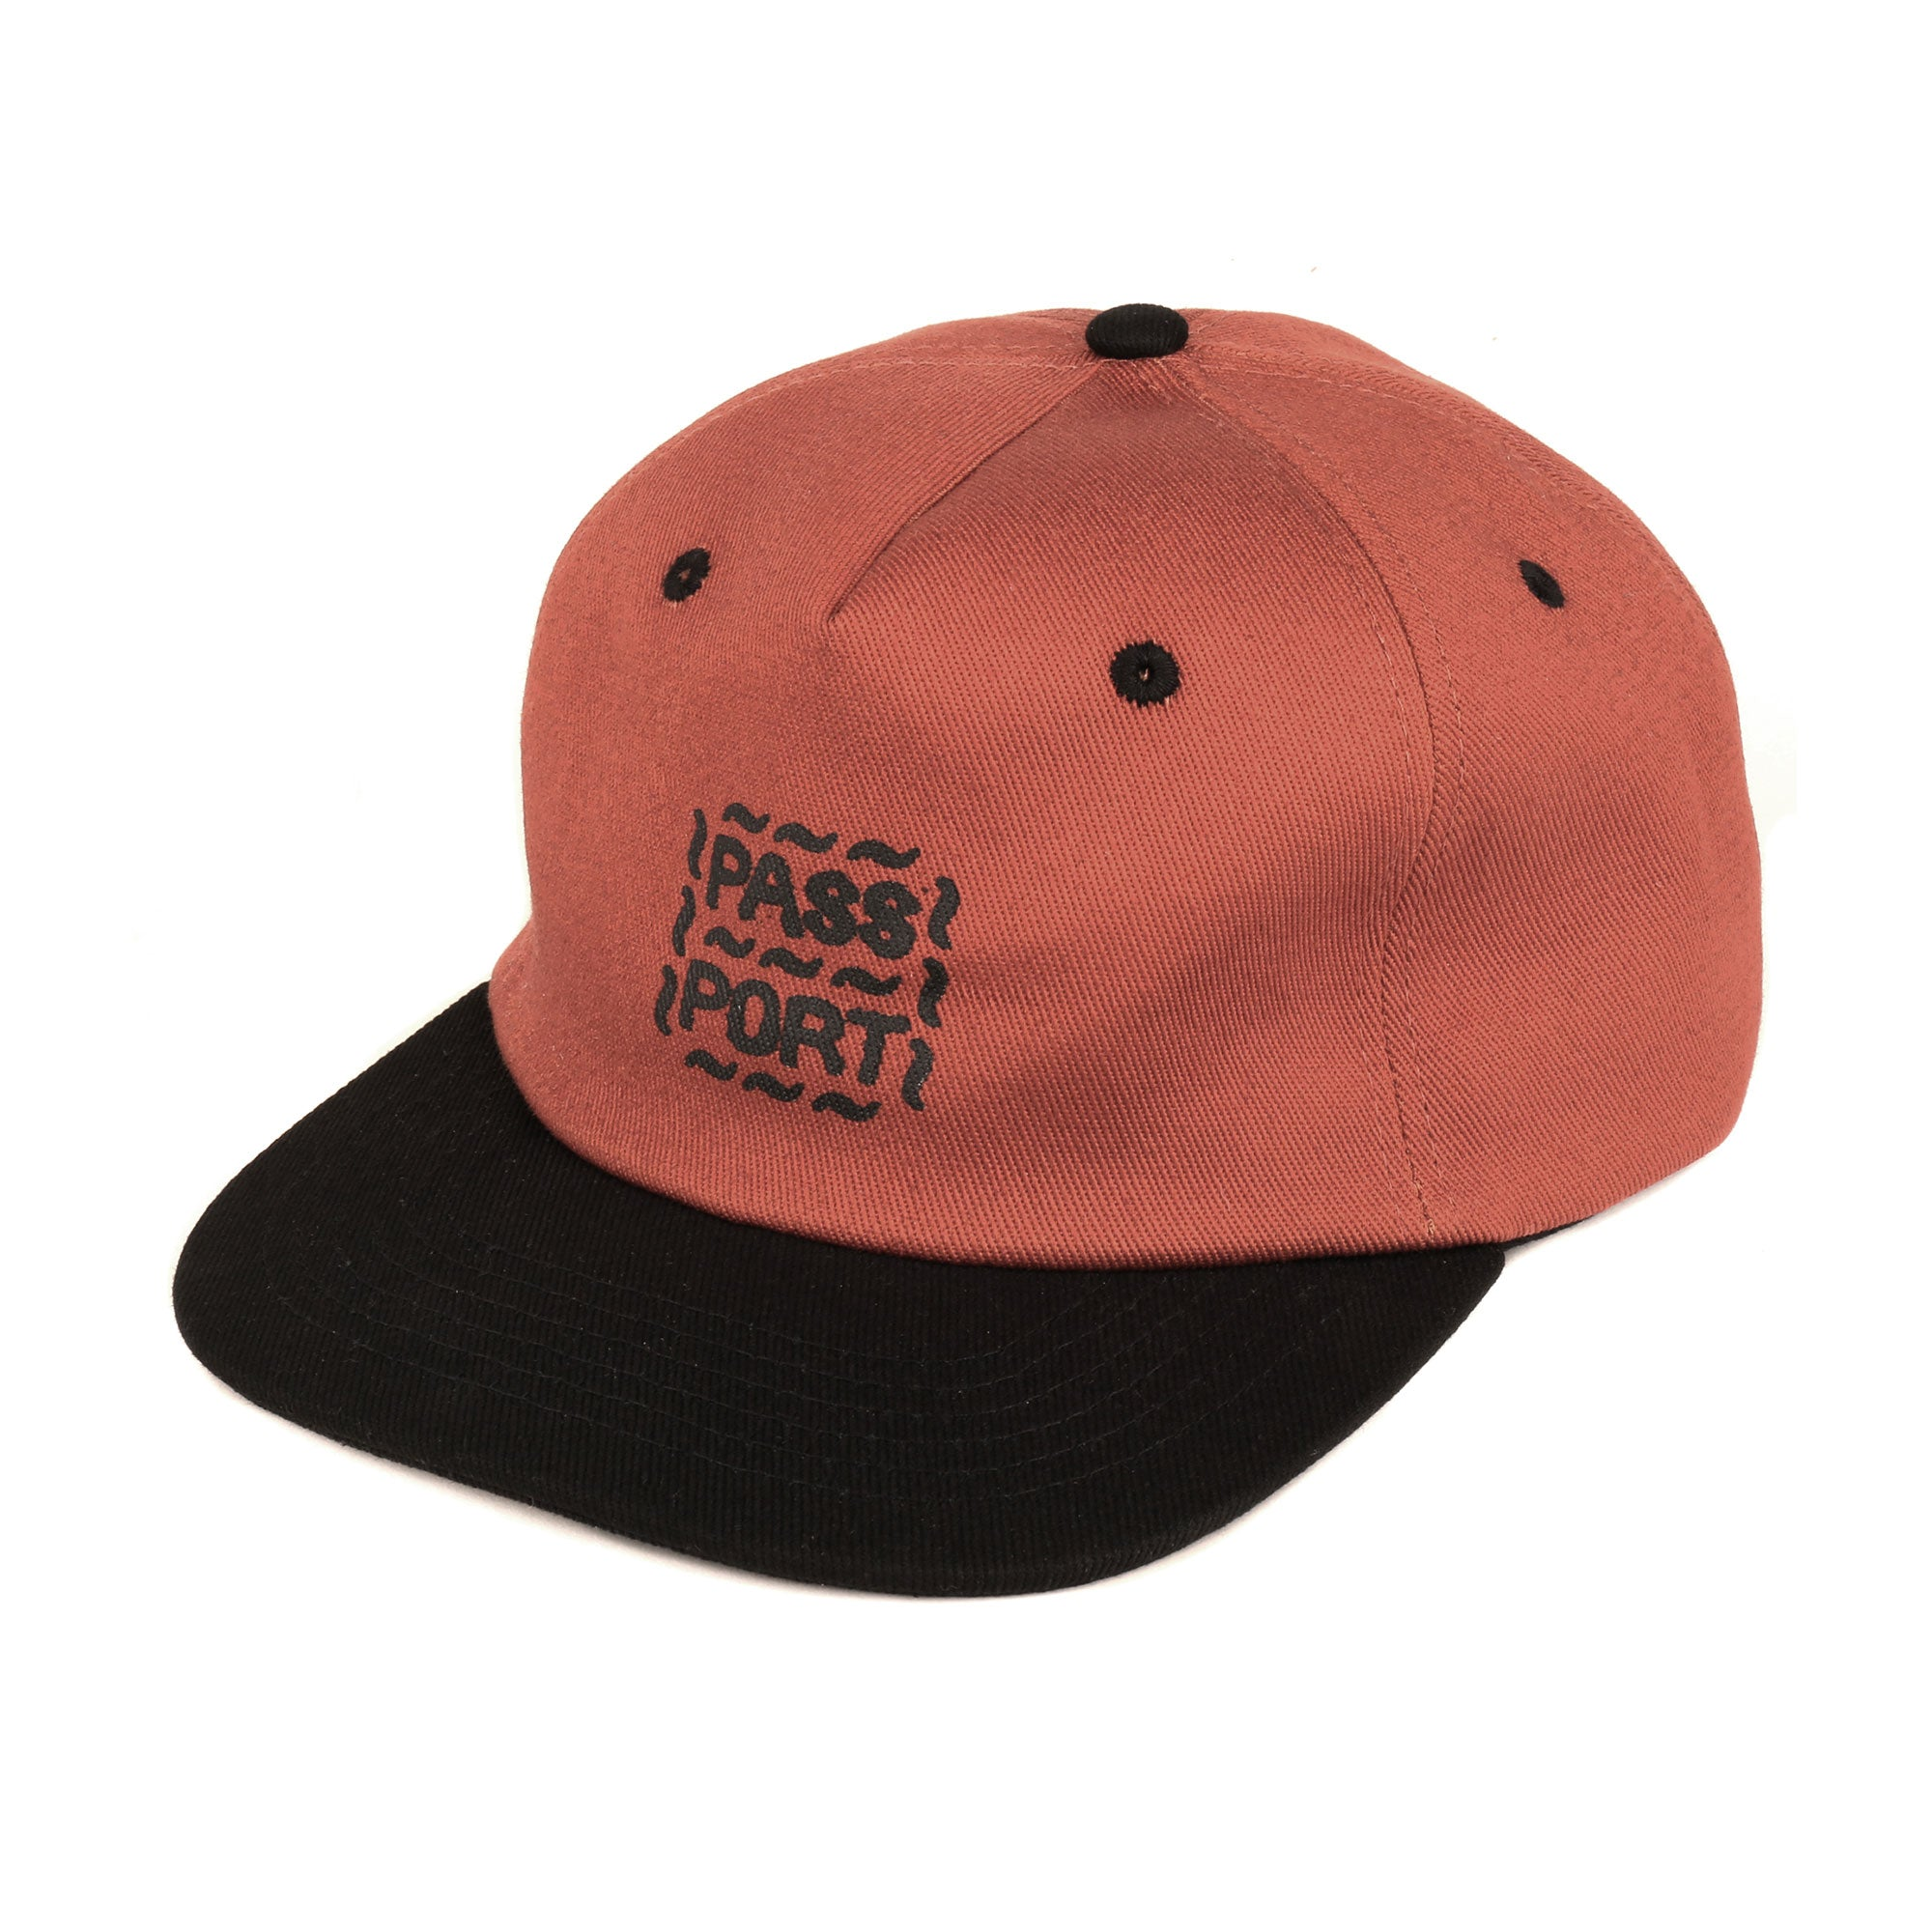 Passport Messy Logo 6 Panel Cap Product Photo #1